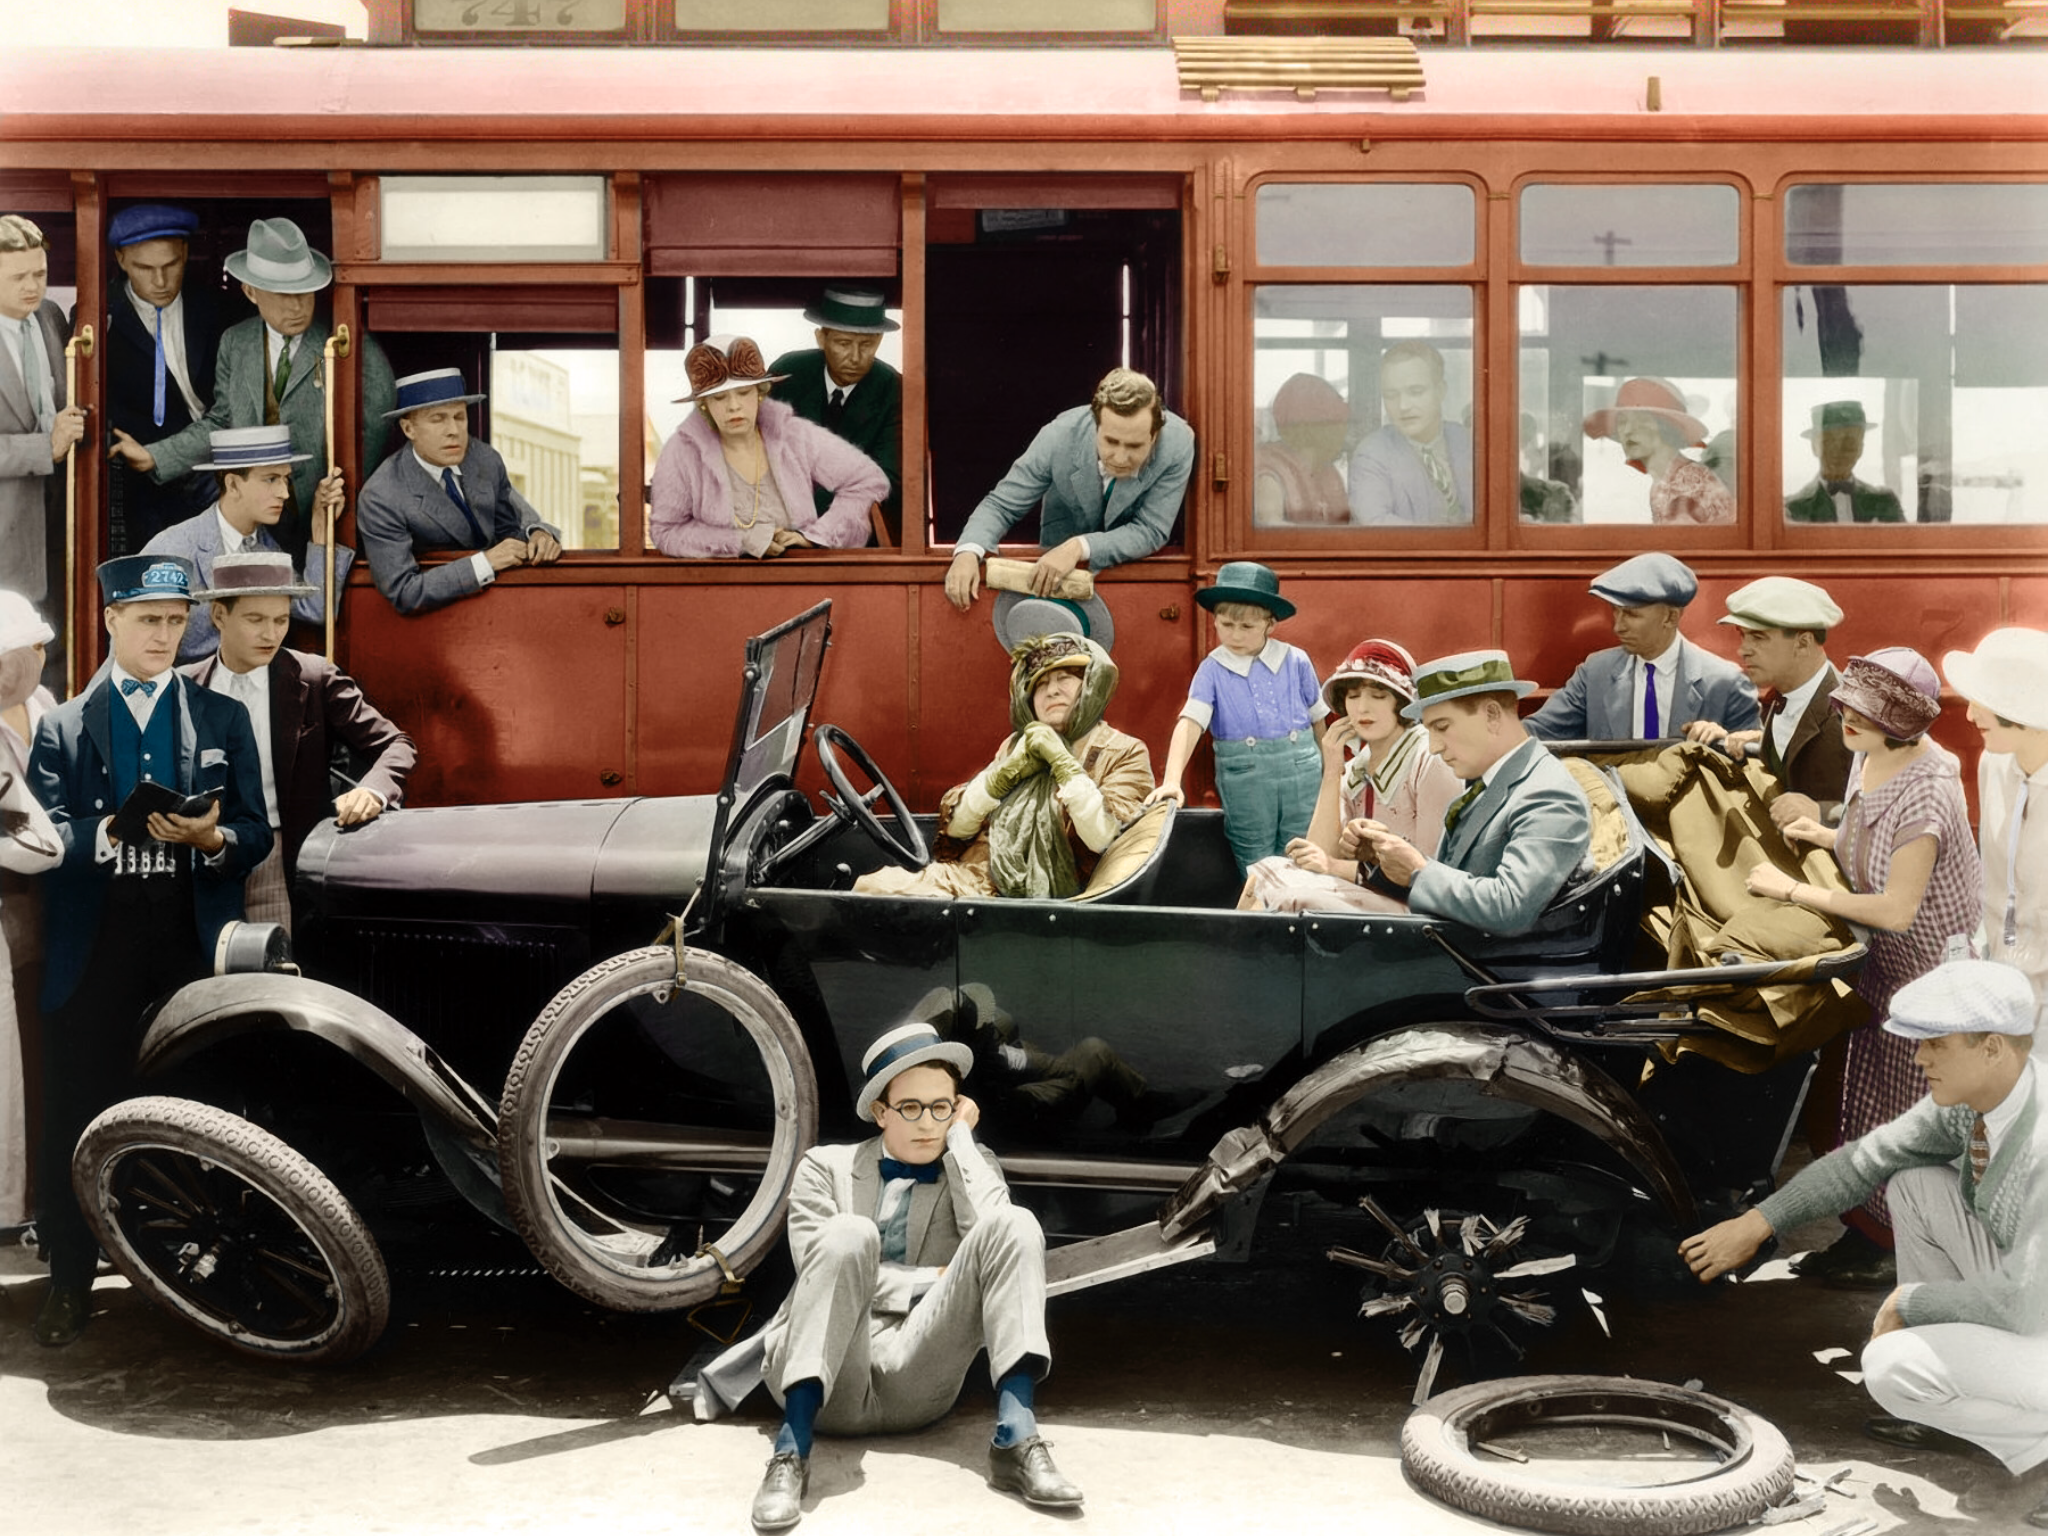 Krizza Neri (b. 1995),Sian Phillips Porn pics Patrick Gallagher,Joan Leslie